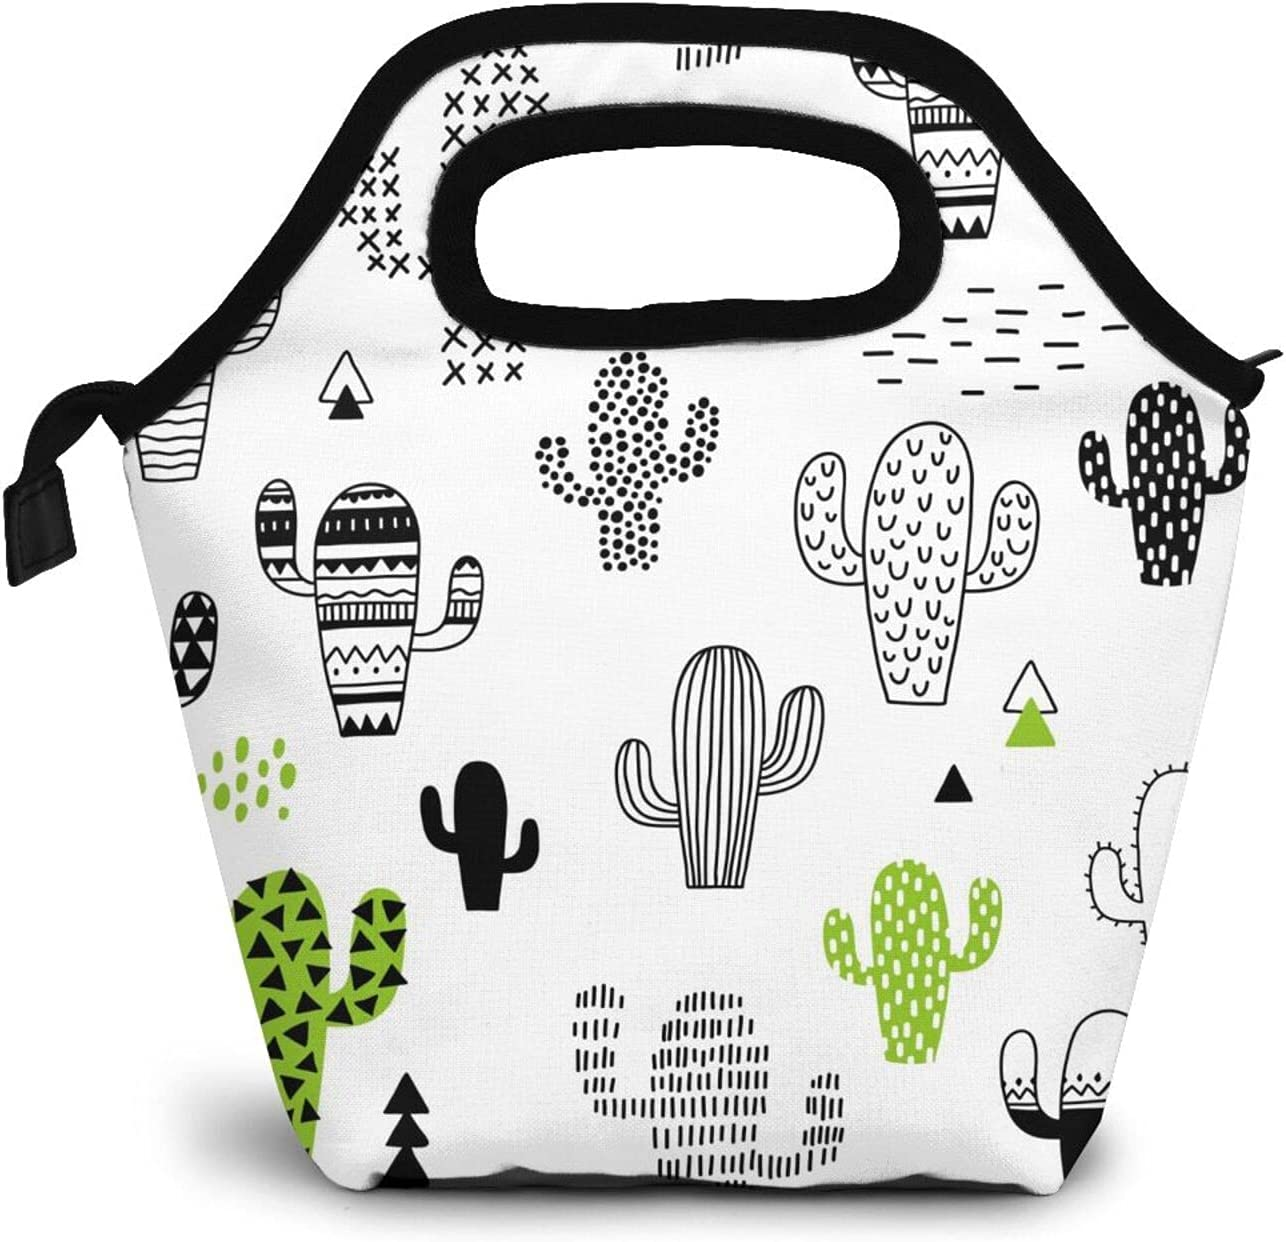 Hand Drawn Cactus Lunch Box Insulated Durable Meal Bag Green Plants Reusable Waterproof Snack Bag Portable Food Container Tote Bags For College Work Picnic Hiking Beach Fishing